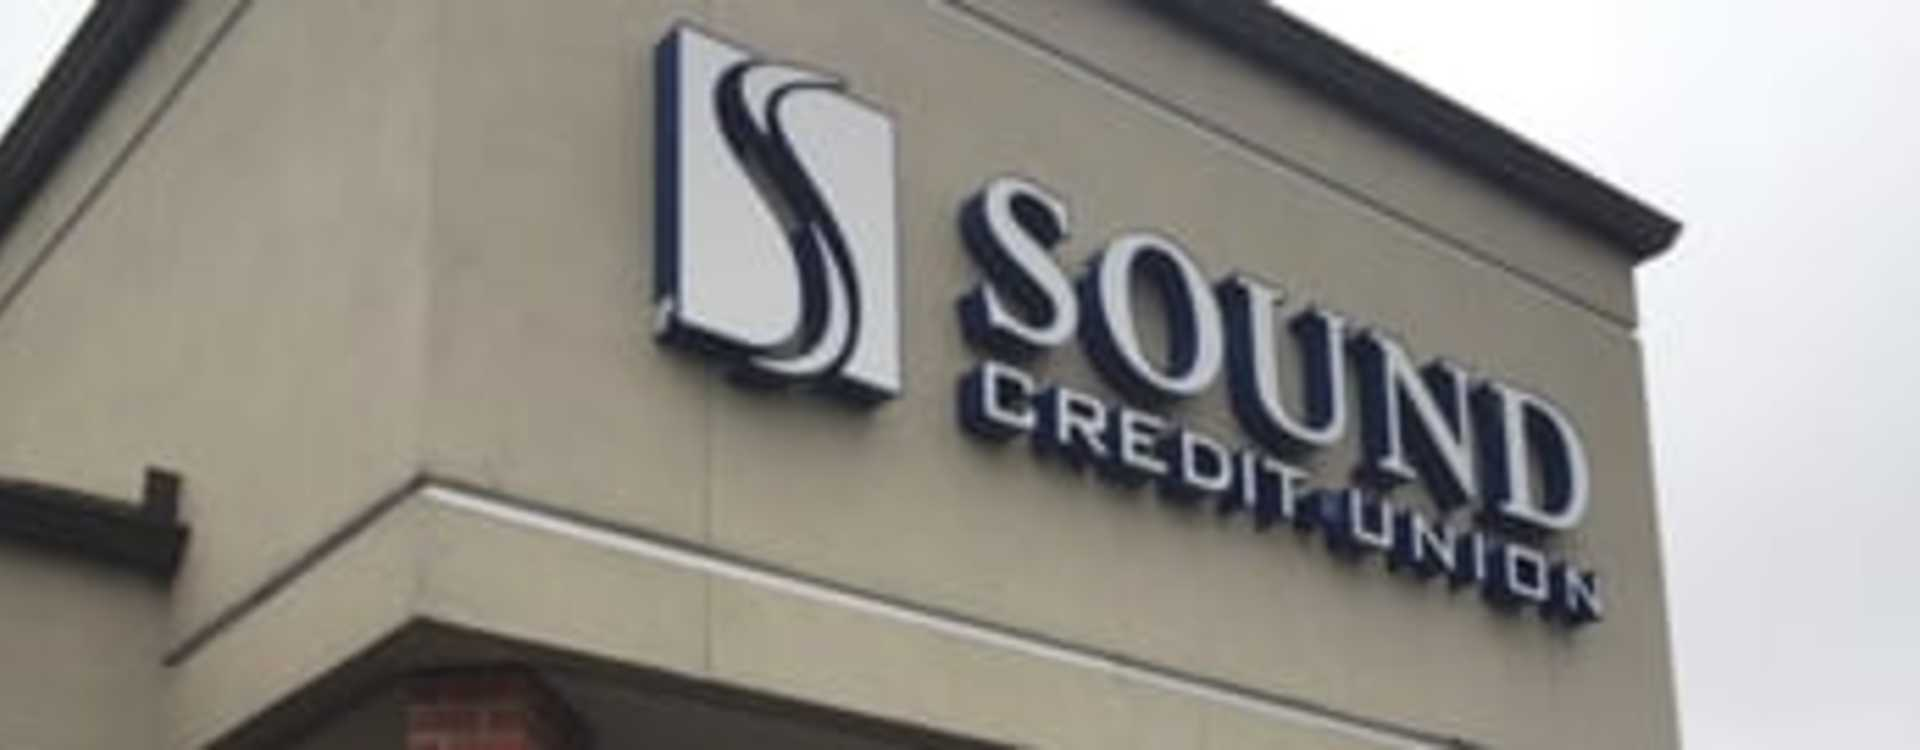 Sound Credit Union - Southcenter